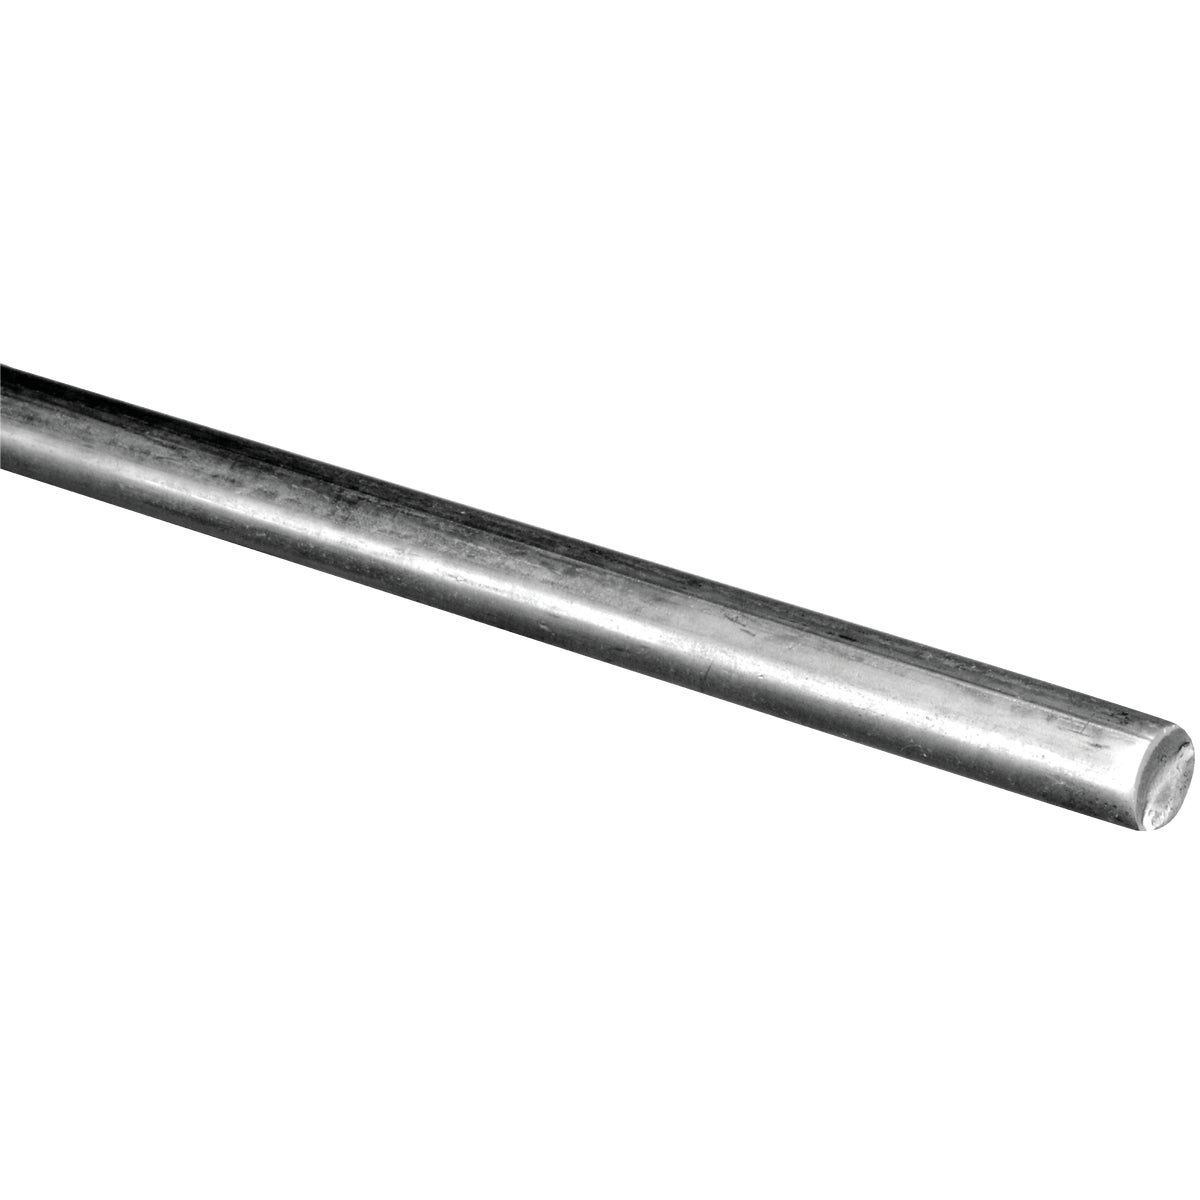 3/16X3' ROUND SS ROD - N347971 by National Mfg Co